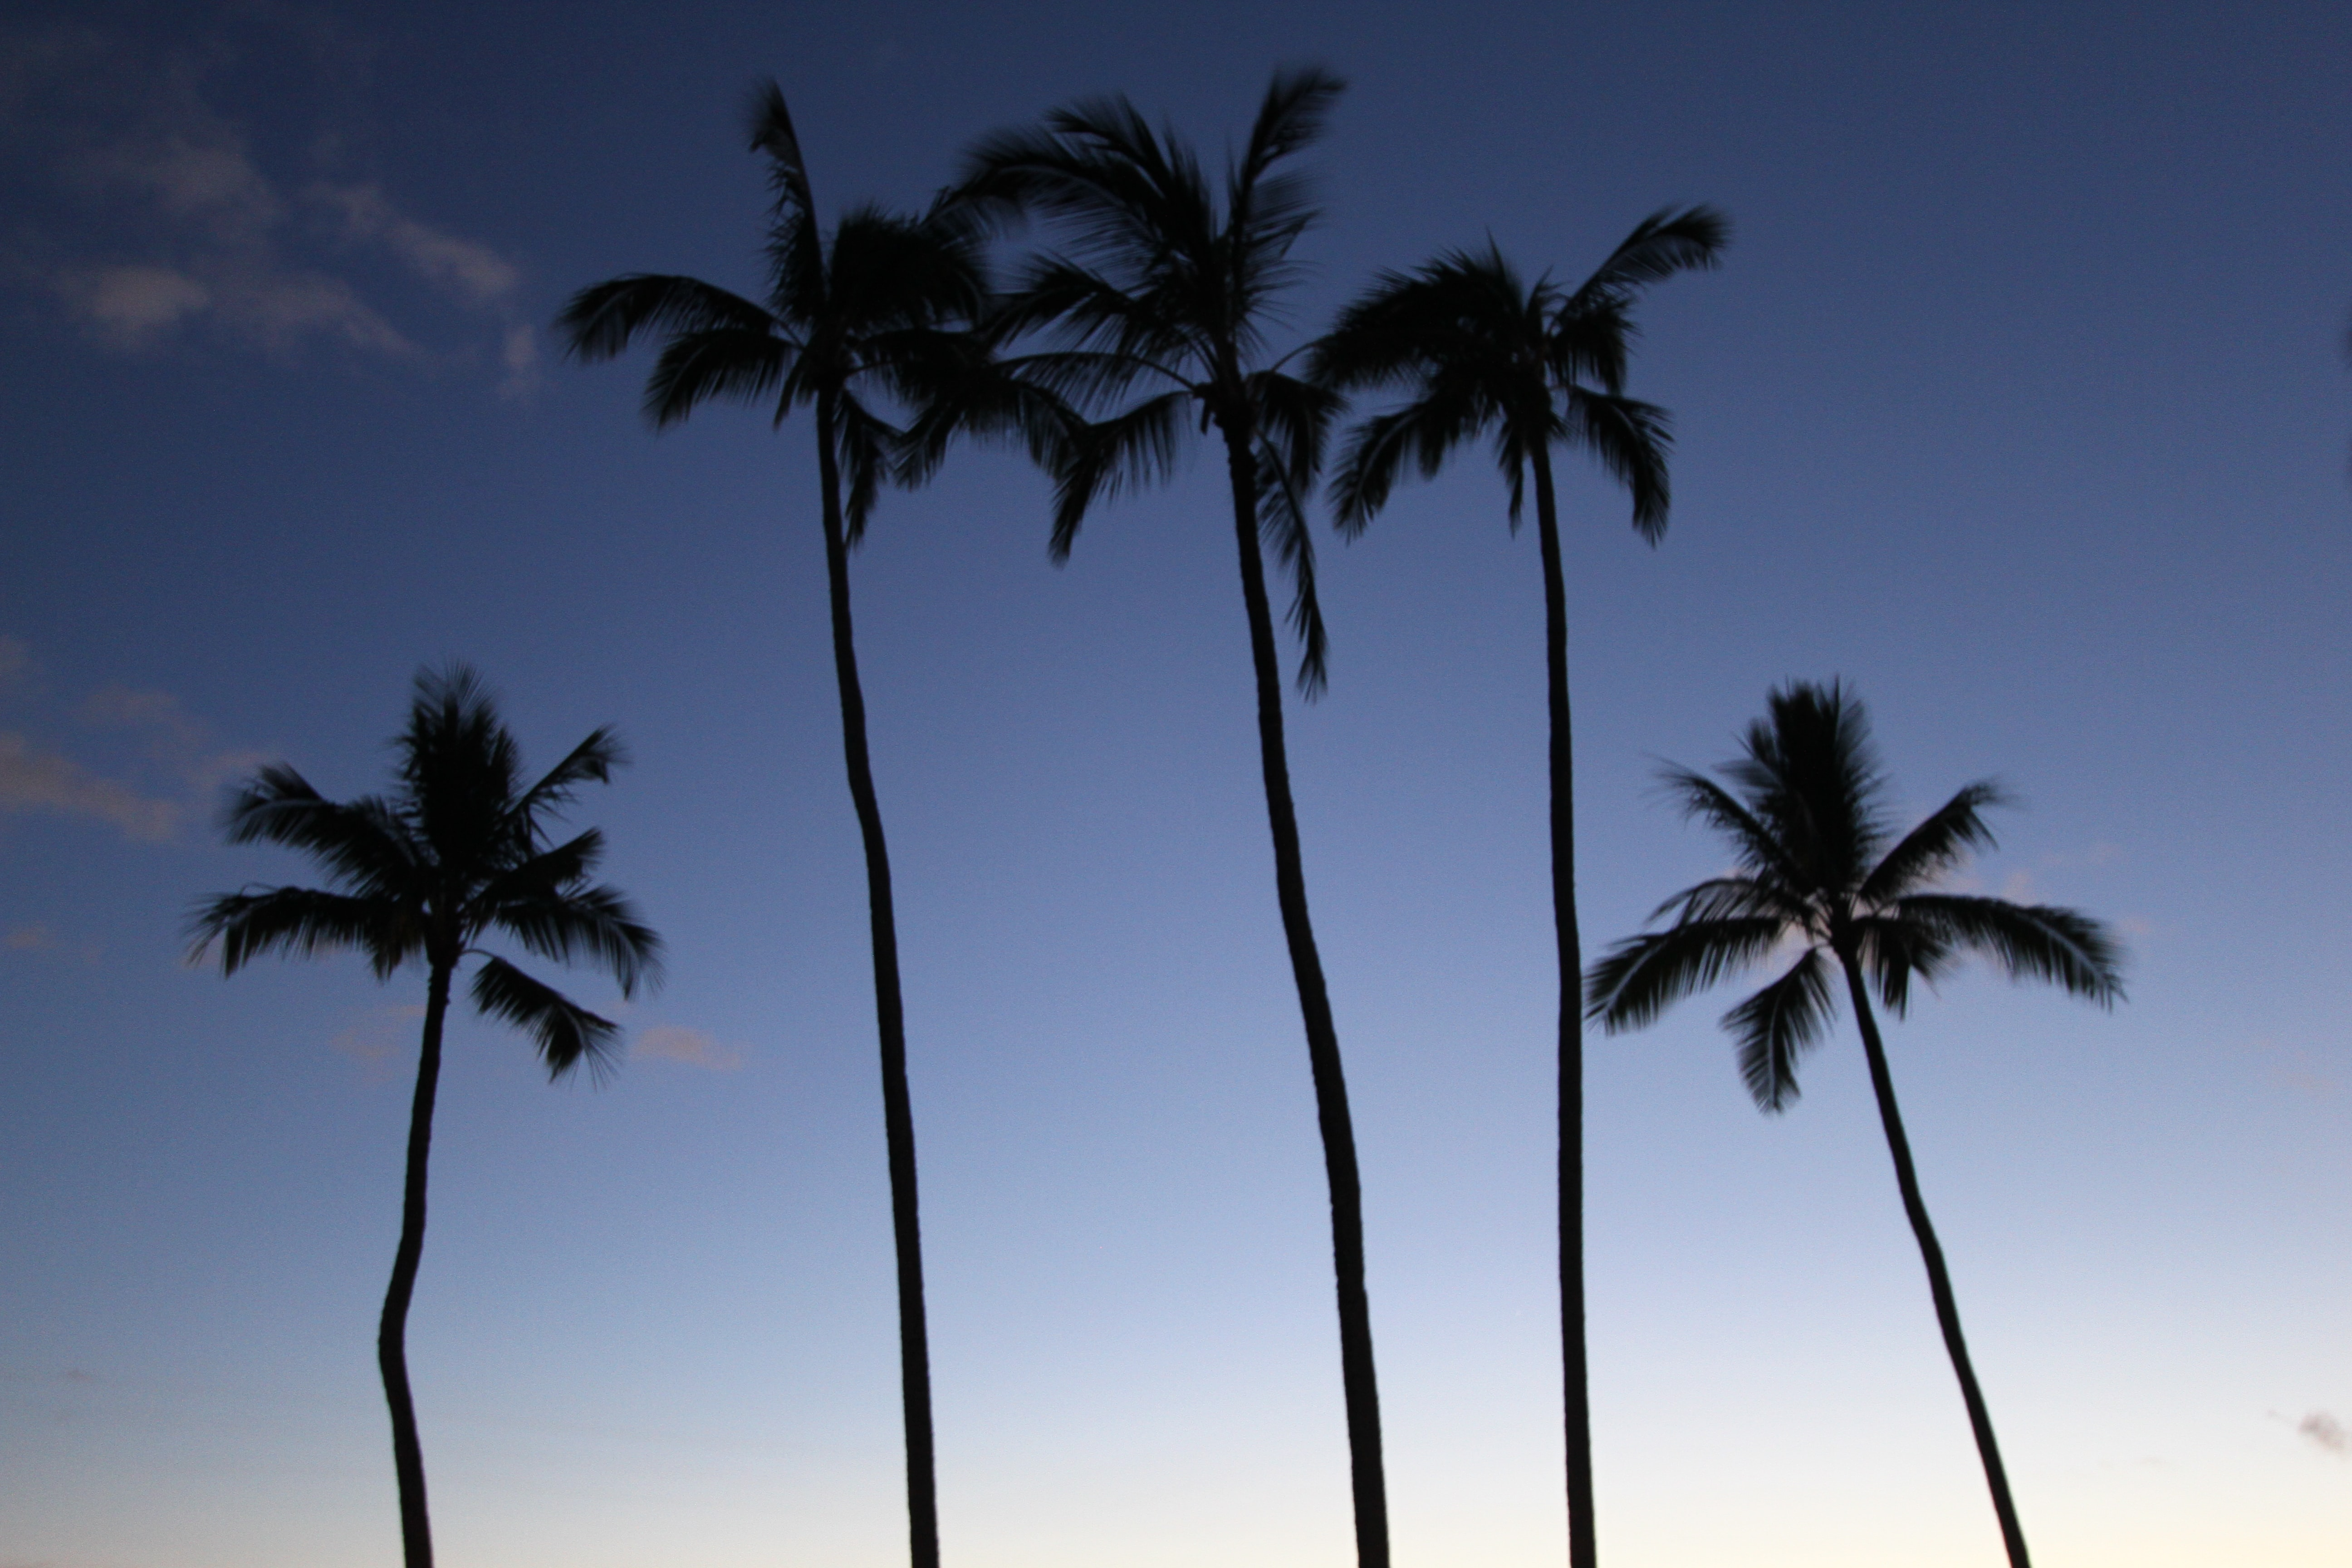 Large palm trees on a beach in Hawaii.